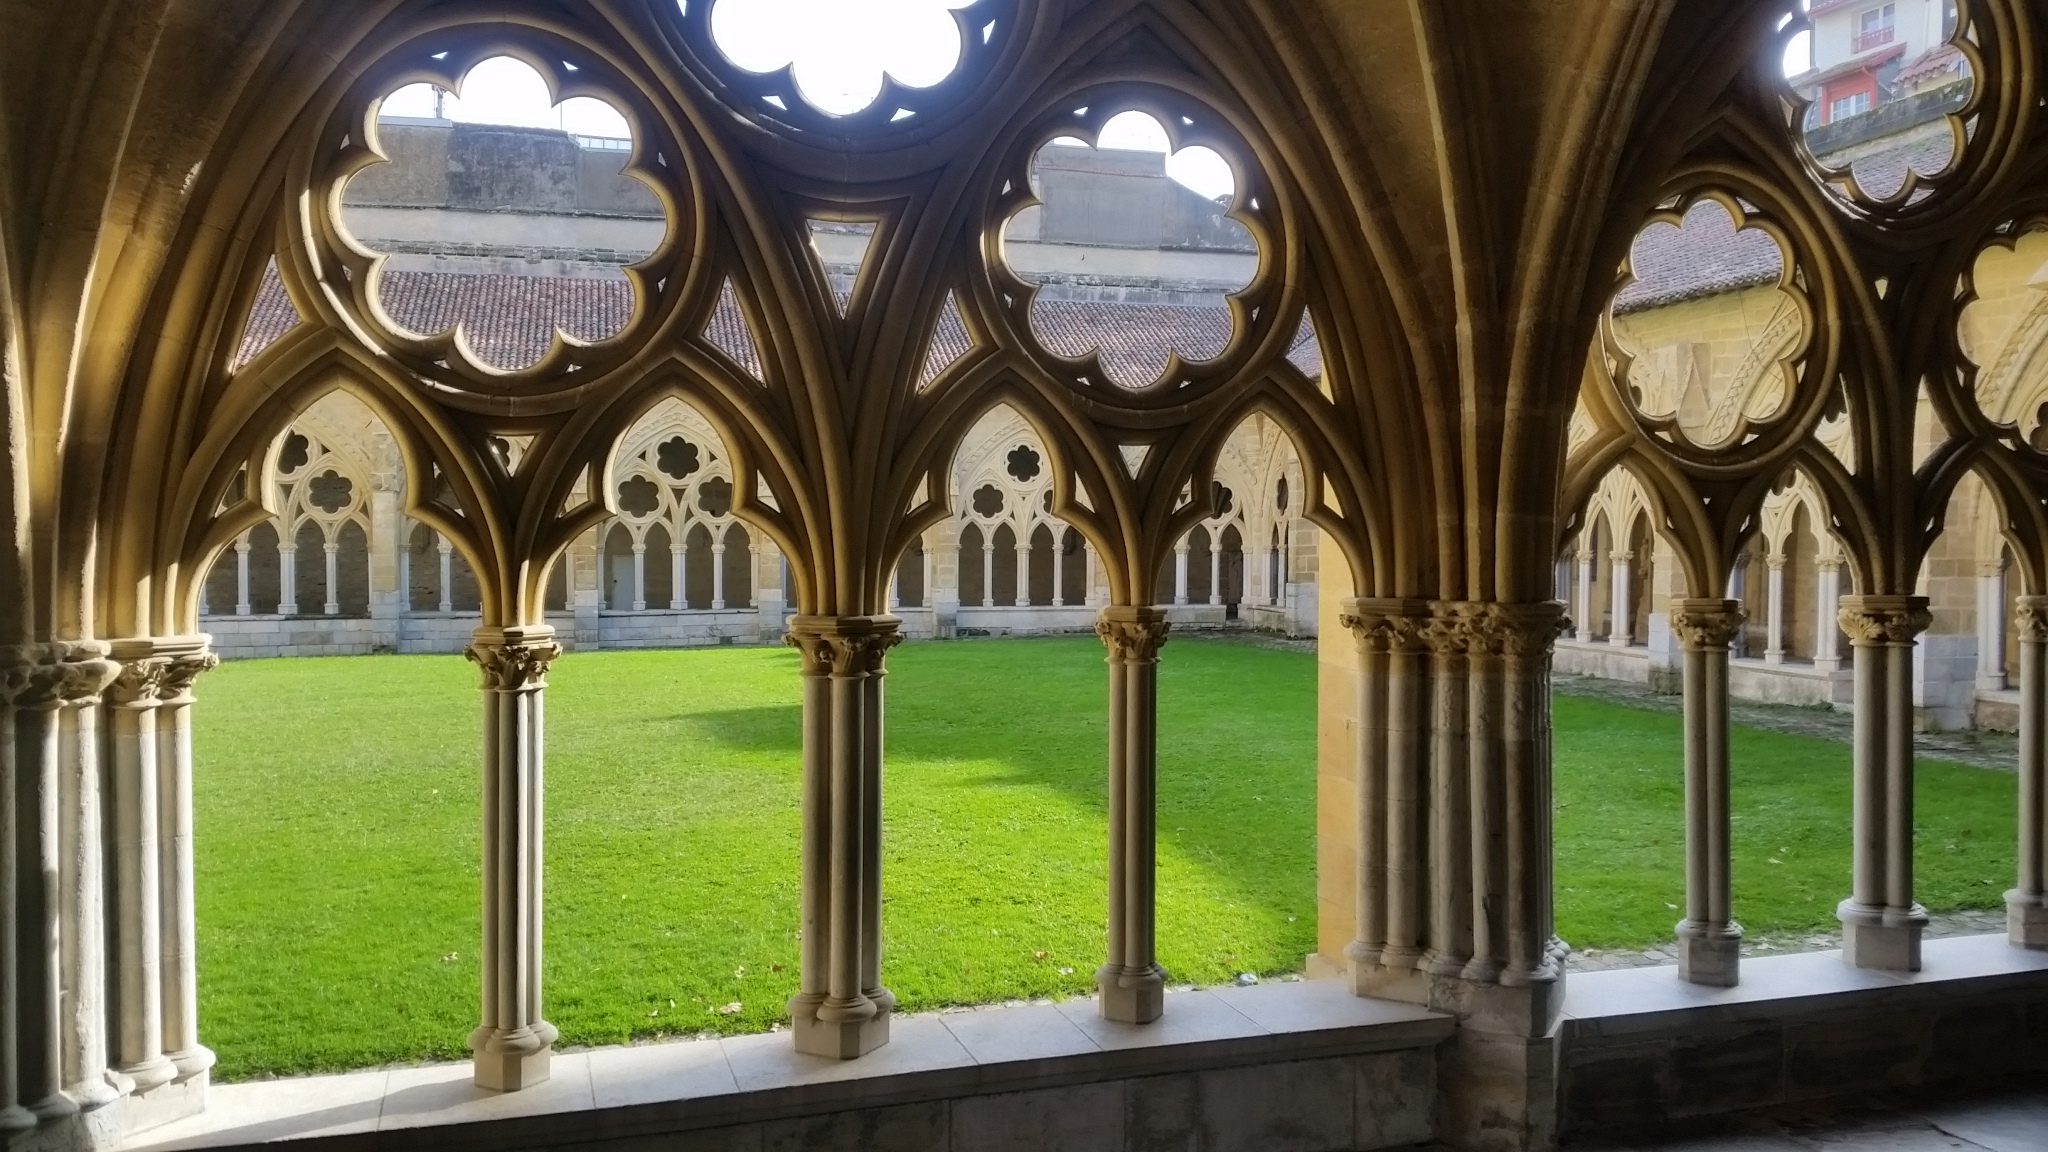 Cloister (Cathedral of Bayonne)